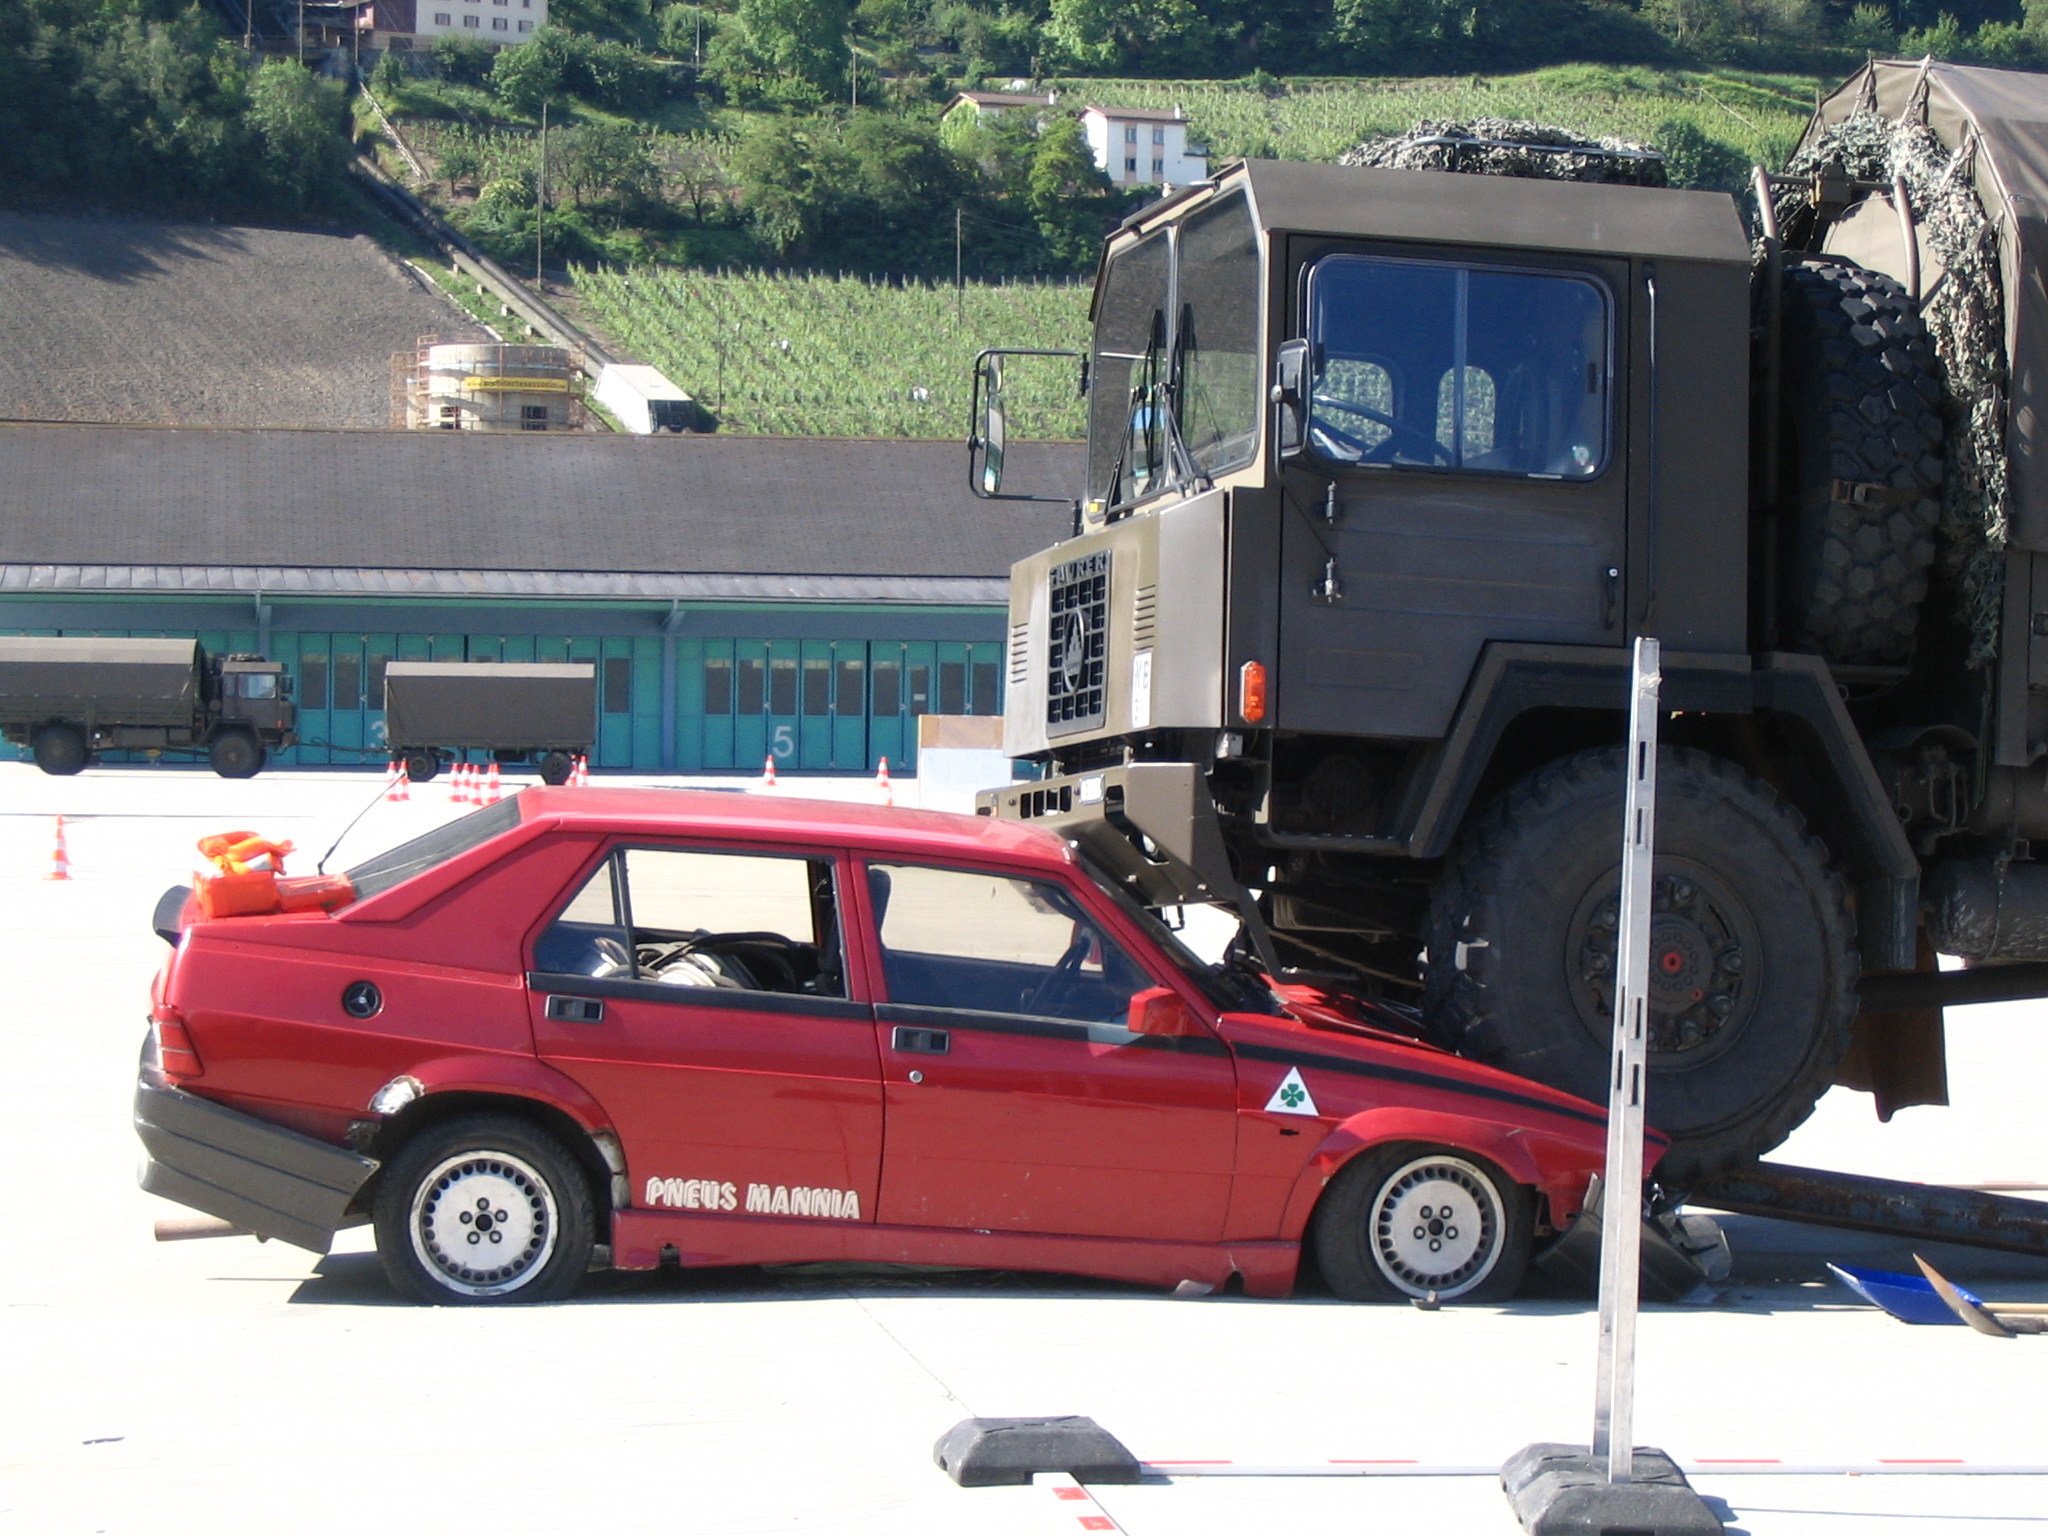 File:Swiss army accident simulation.jpg - Wikimedia Commons